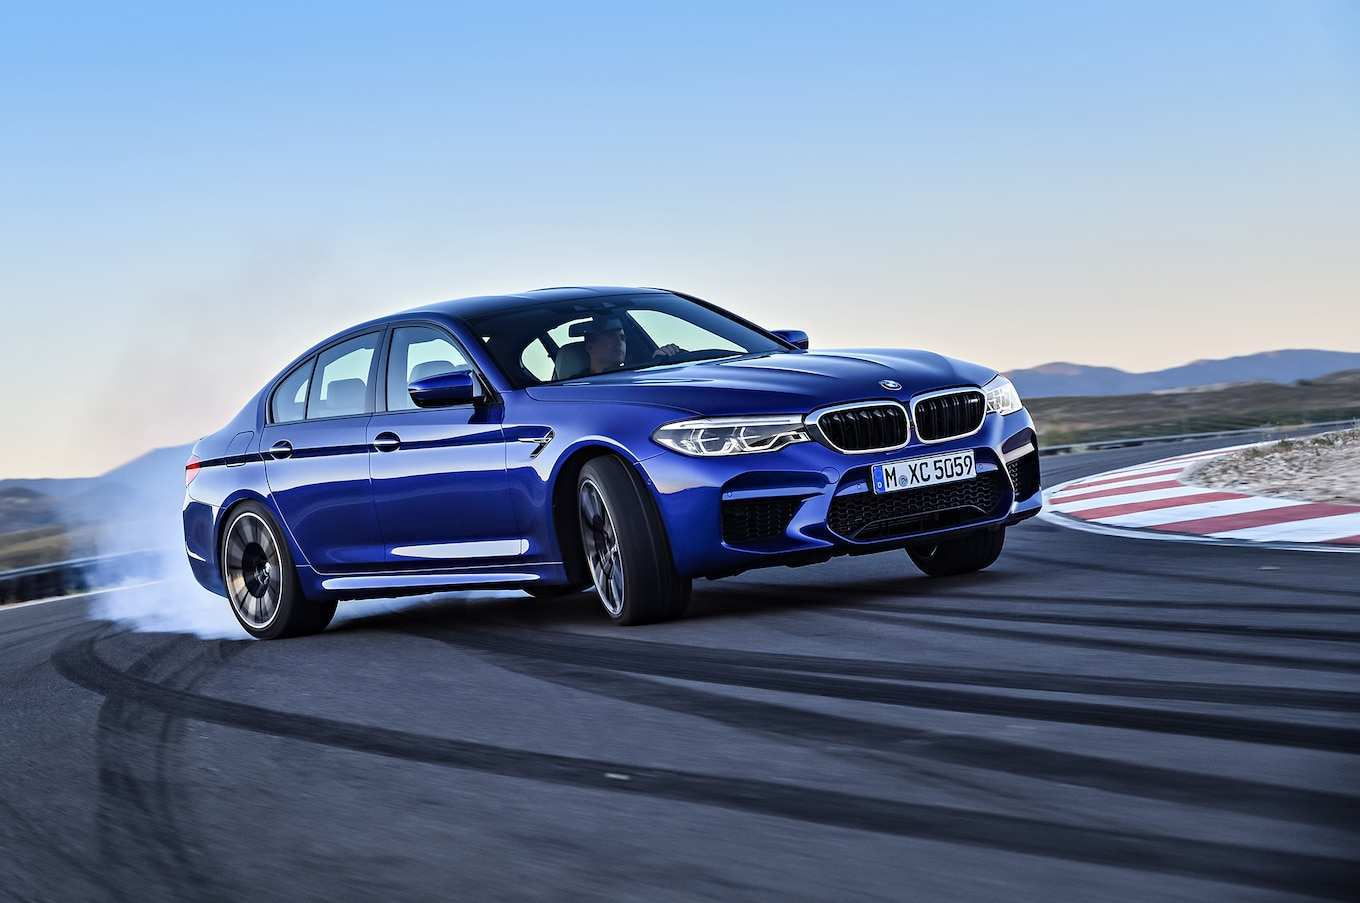 94 Best Review Bmw M5 Redesign Prices by Bmw M5 Redesign